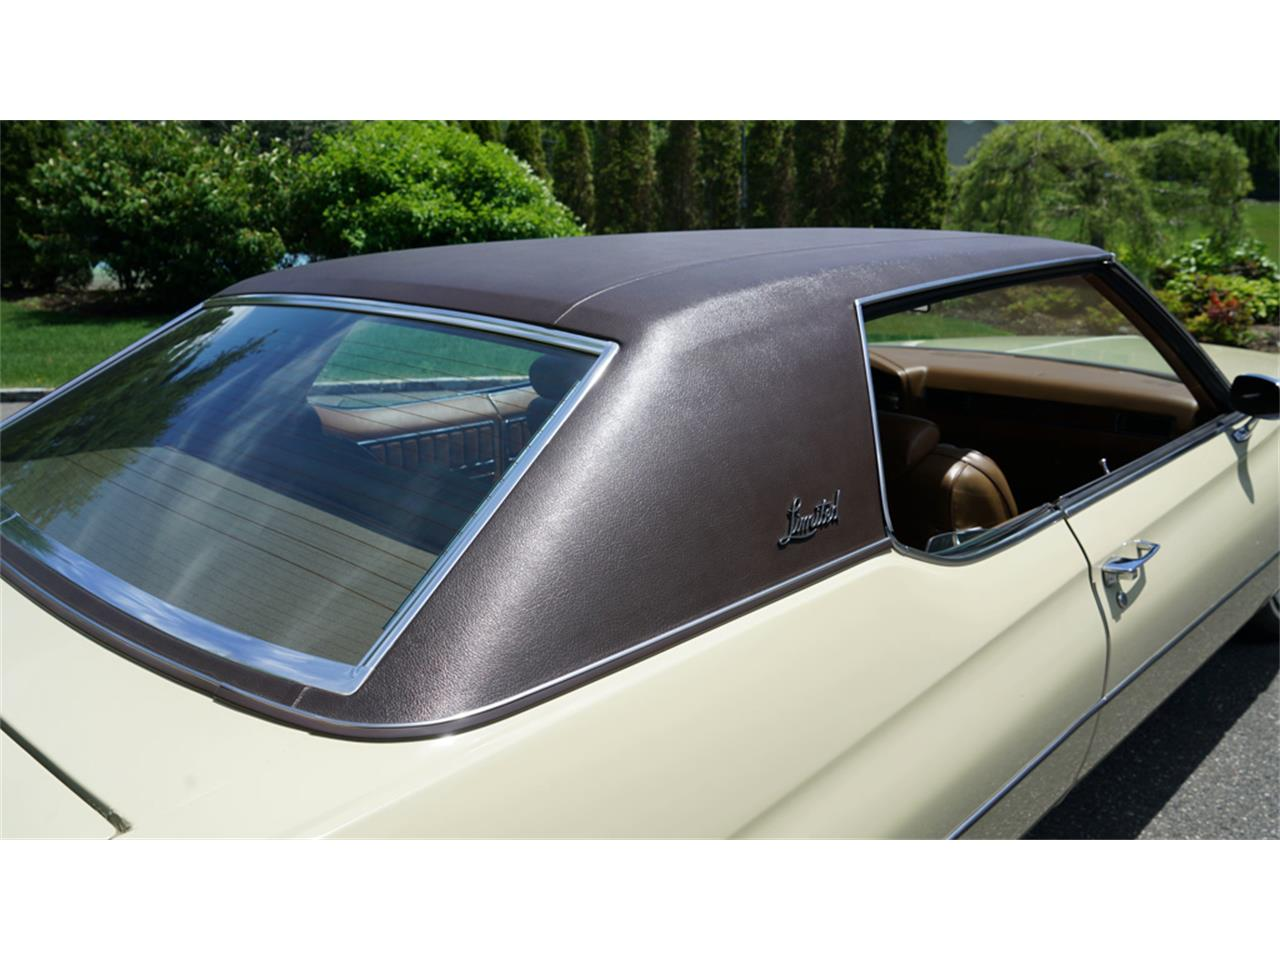 Large Picture of Classic '72 Buick Electra 225 located in Old Bethpage New York - $32,500.00 Offered by Fiore Motor Classics - QAJE